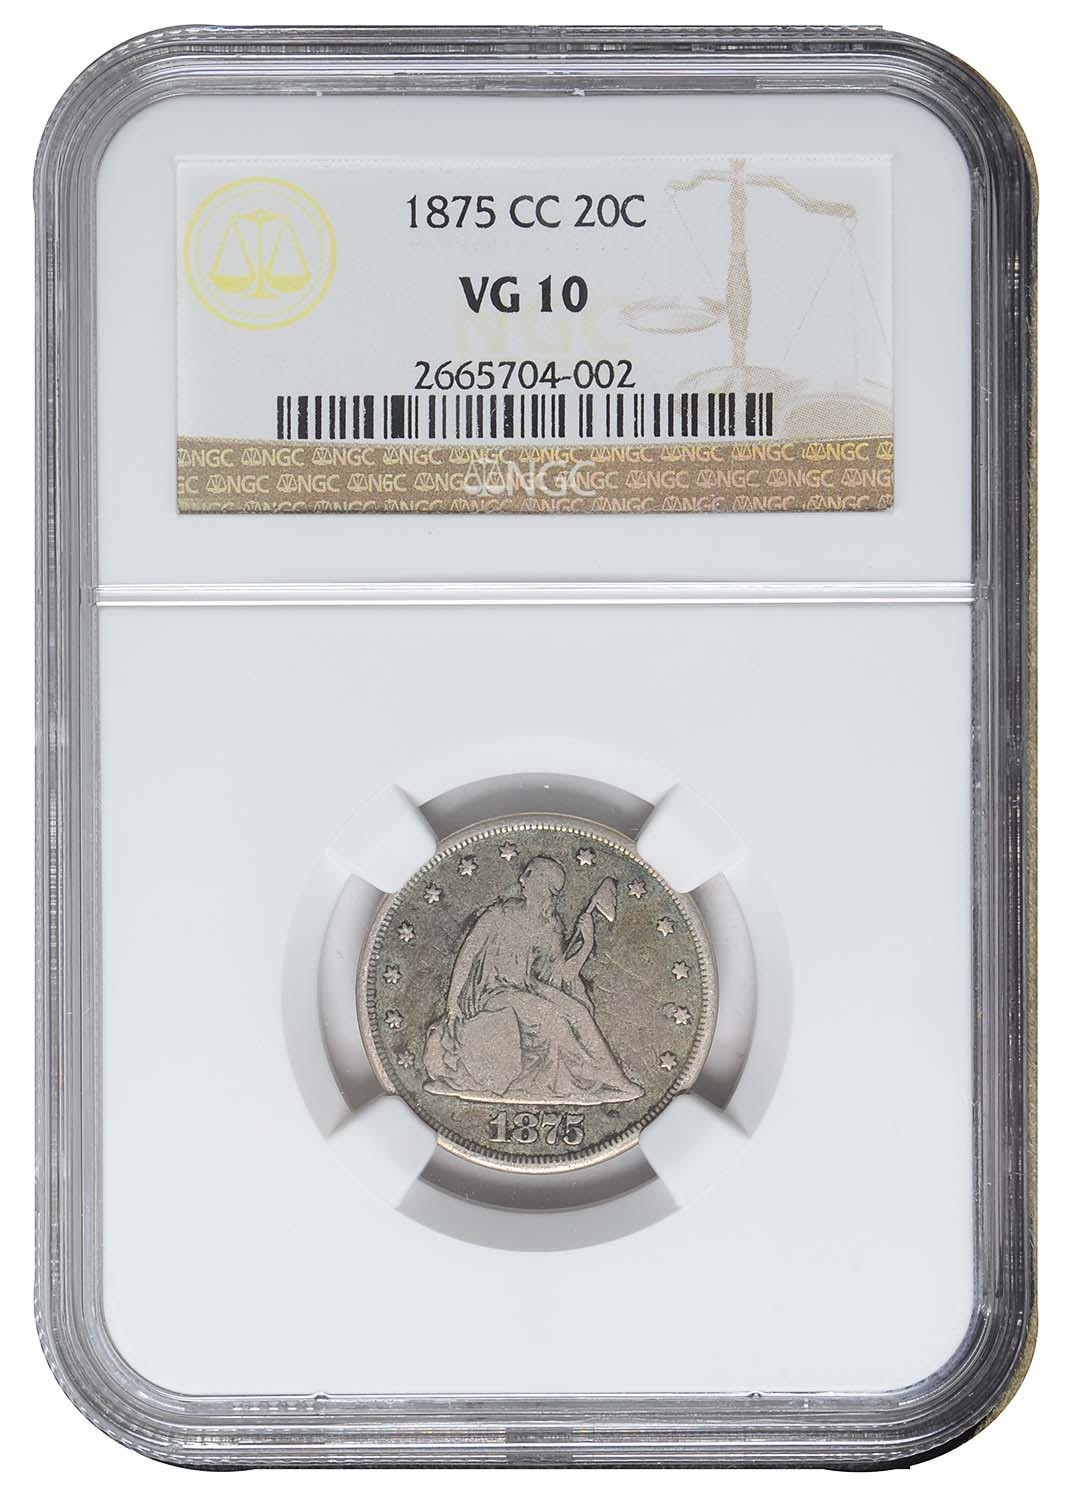 KEY-DATE 1875 CC CARSON CITY SEATED LIBERTY NGC VG10 20 CENTS SILVER COIN